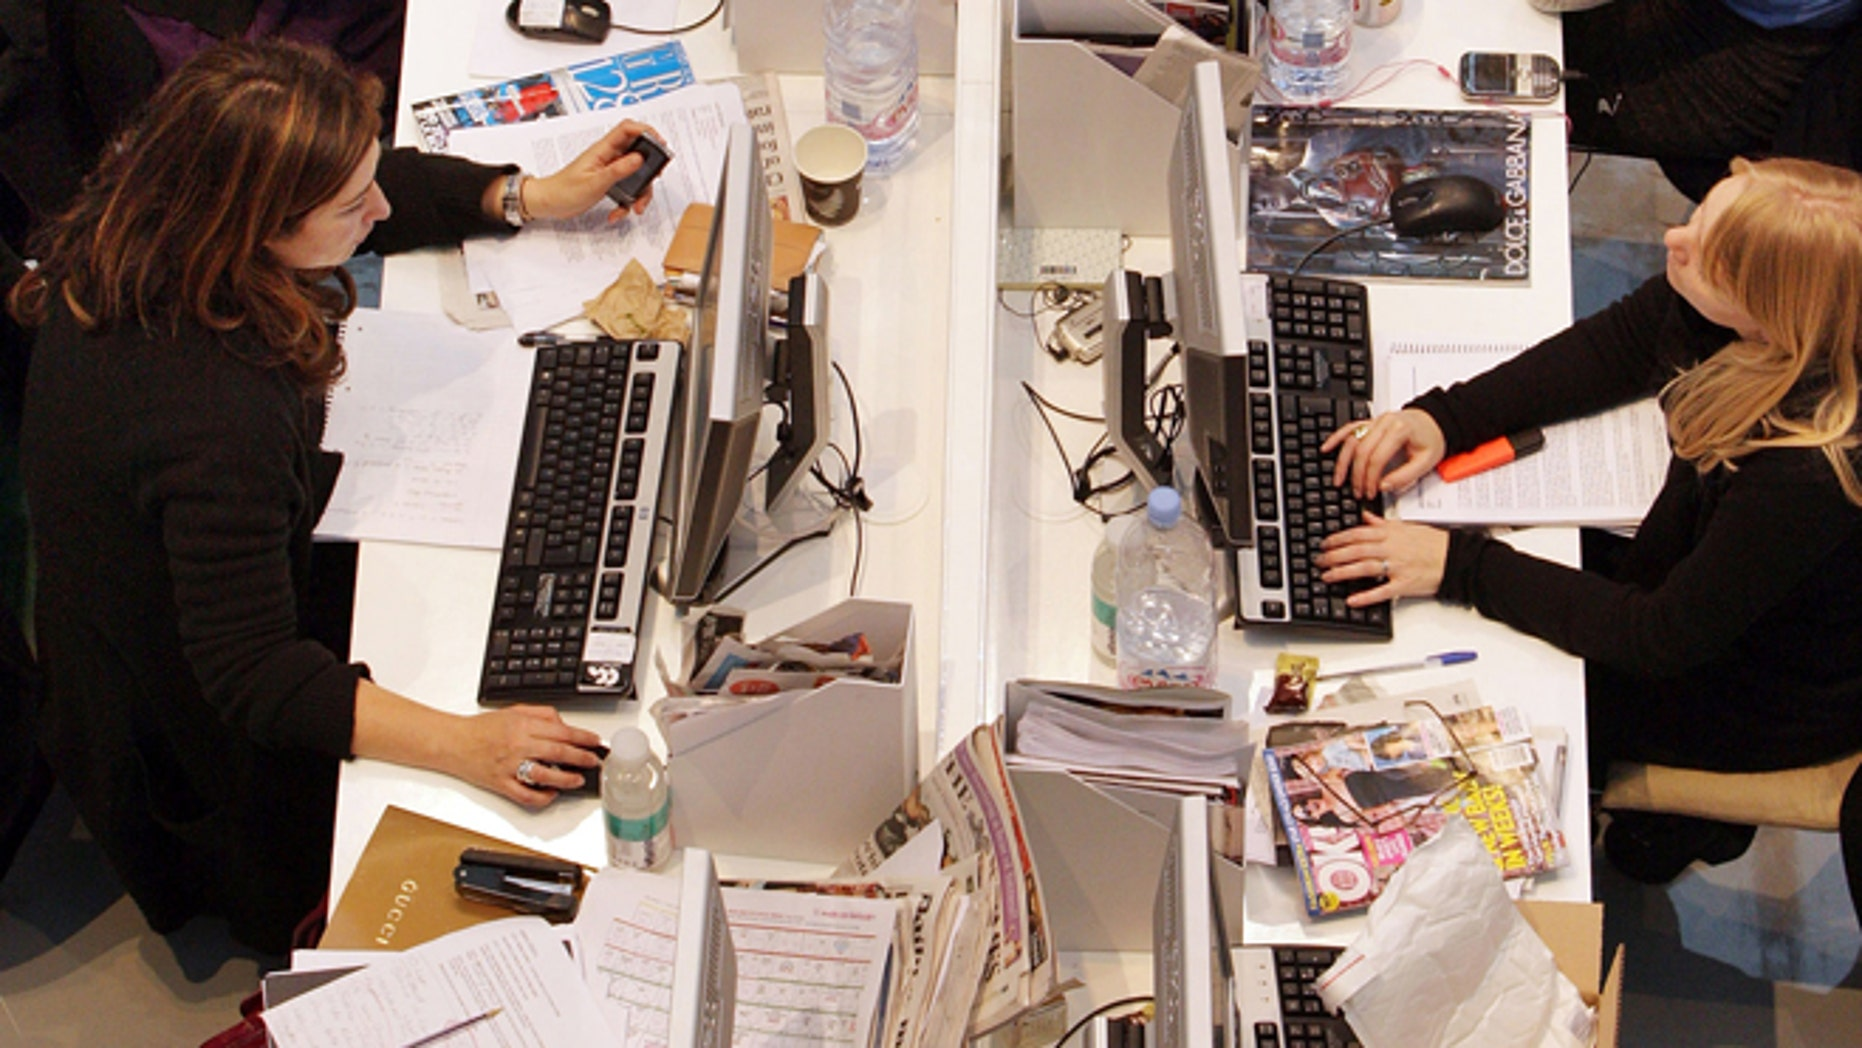 LONDON - NOVEMBER 03:  Production staff on the weekly fashion magazine, Grazia edit the magazine in a temporary office inside the Westfield shopping centre on November 3, 2008 in London. For one week Grazia magazine is being produced in the Westfield shopping centre and are offering shoppers free make-overs, fashion consultations and advice on pursuing a modeling career.   (Photo by Oli Scarff/Getty Images)